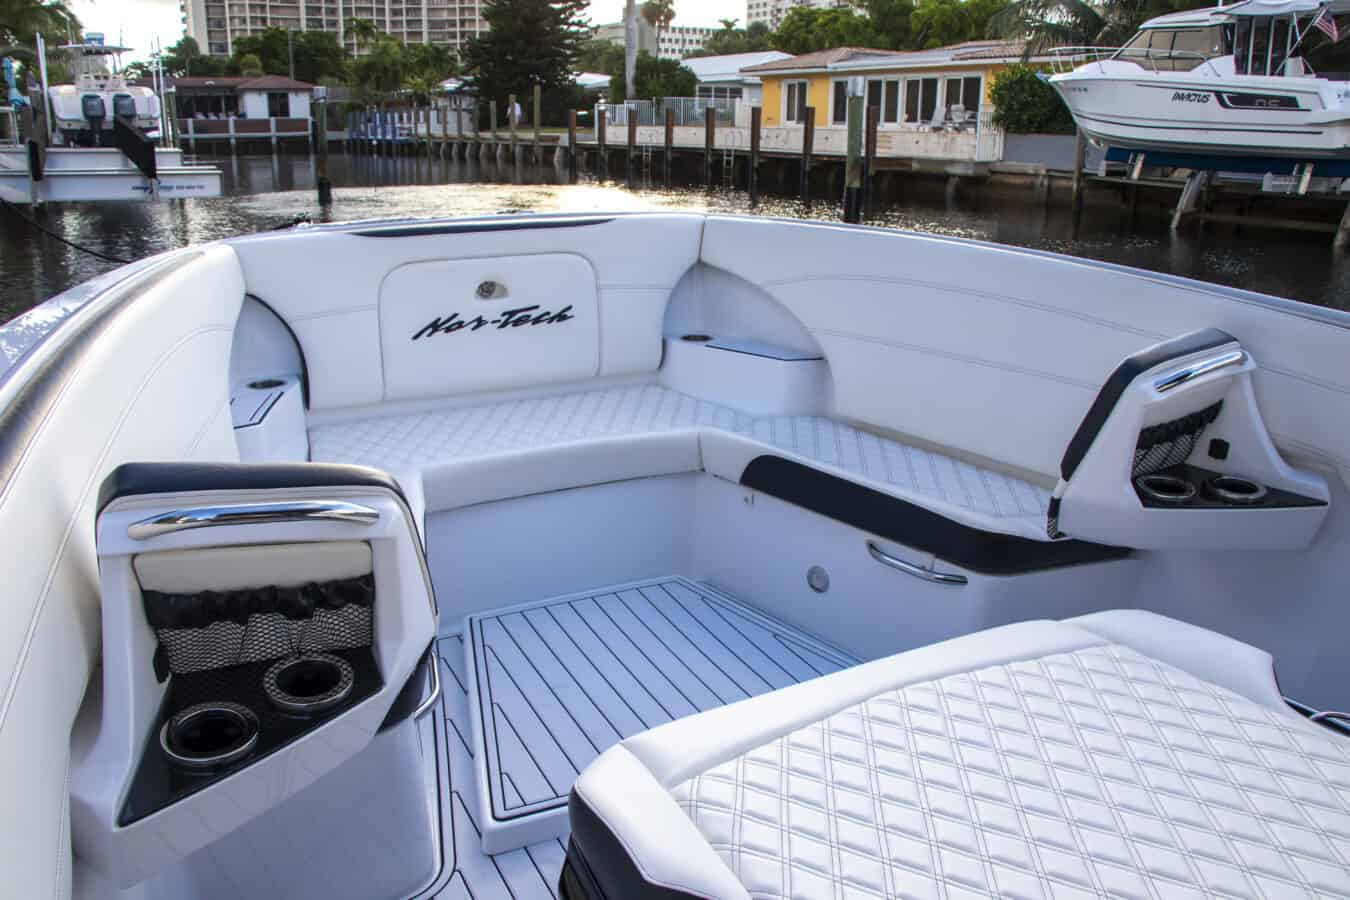 New  2021 39' Nor-tech 390 Sport Boat Engine in Metairie,